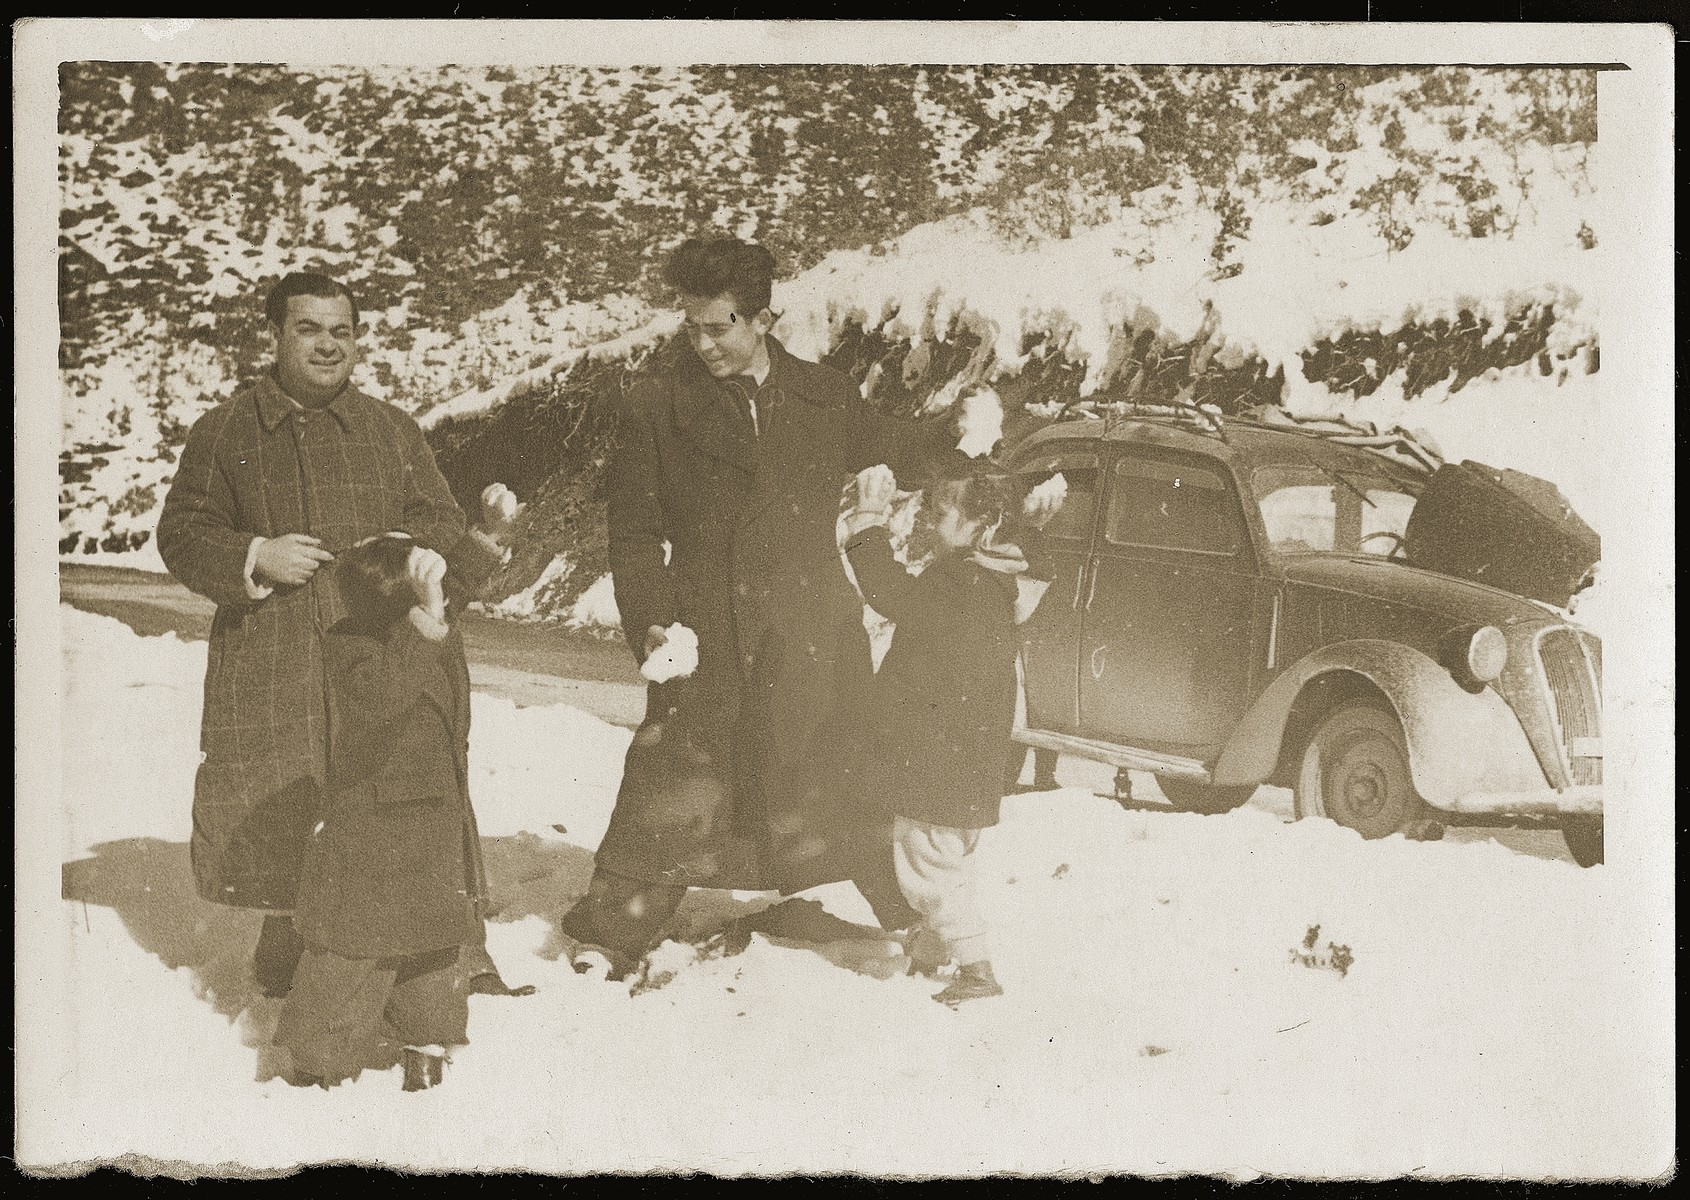 Refik Veseli (right) plays with Irena and Gavra Mandil in the snow during the period in which he hid them at his parents' home in Kruja.  The four are on their way to the wedding of Neshed Ismail in the Kosovo Mountains.